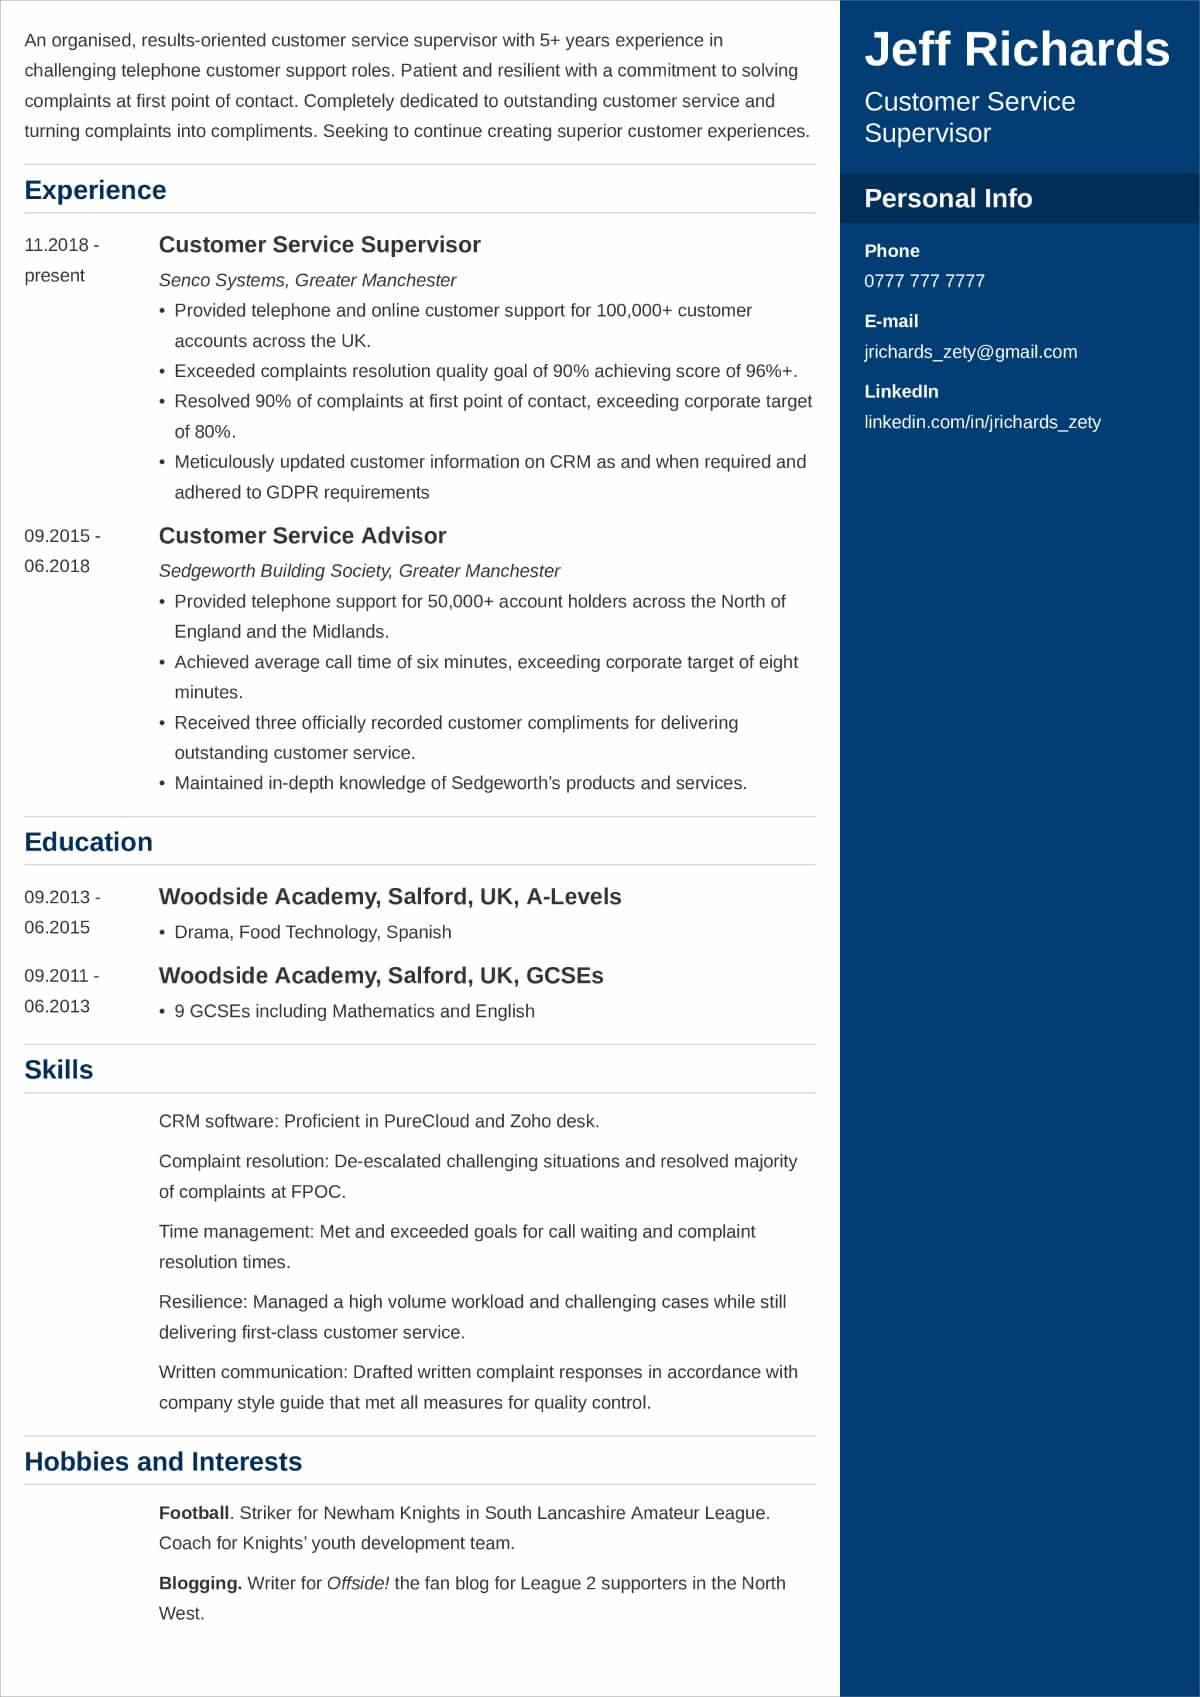 interests and hobbies for resume examples